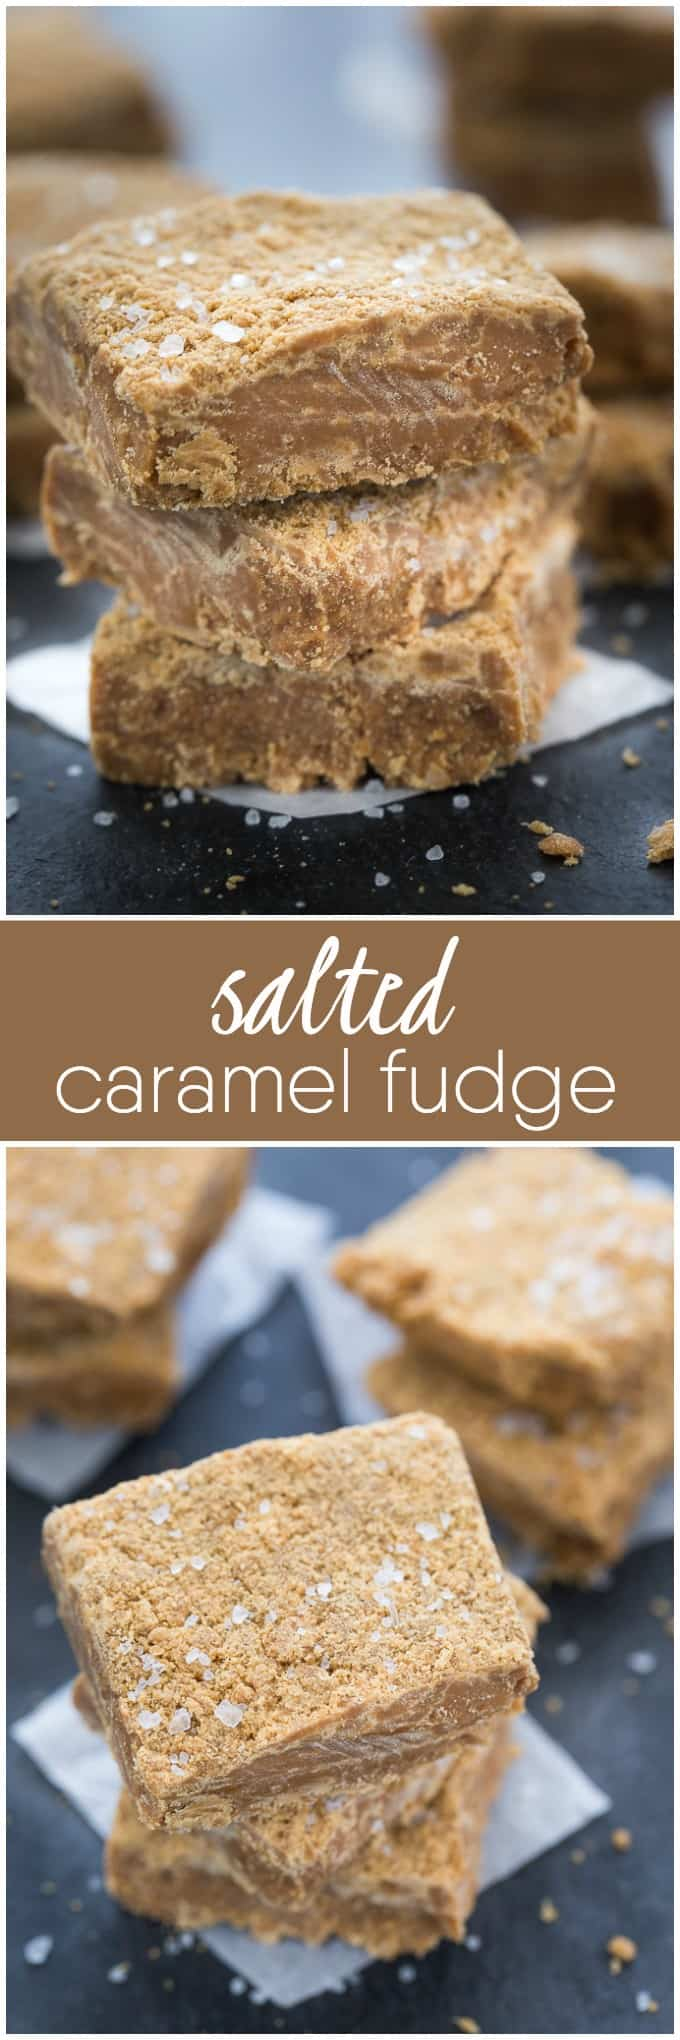 Salted Caramel Fudge - Salty and sweet collide! This rich homemade fudge recipe is the ideal salted caramel bite.